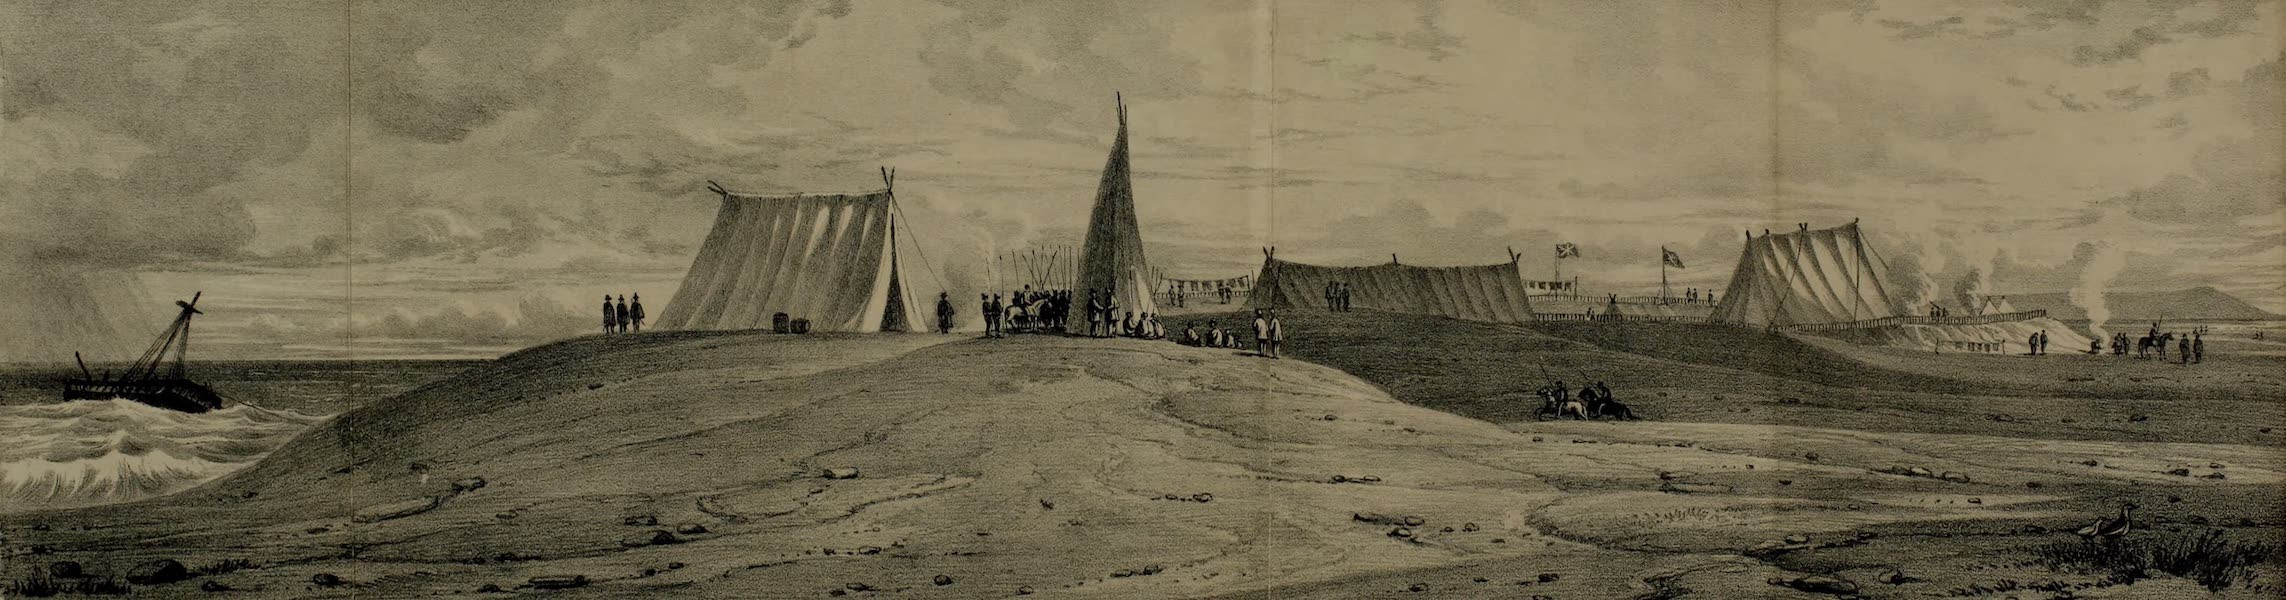 A Diary of the Wreck of His Majesty's Ship Challenger - Encampment at Molguilla, Chili (1836)